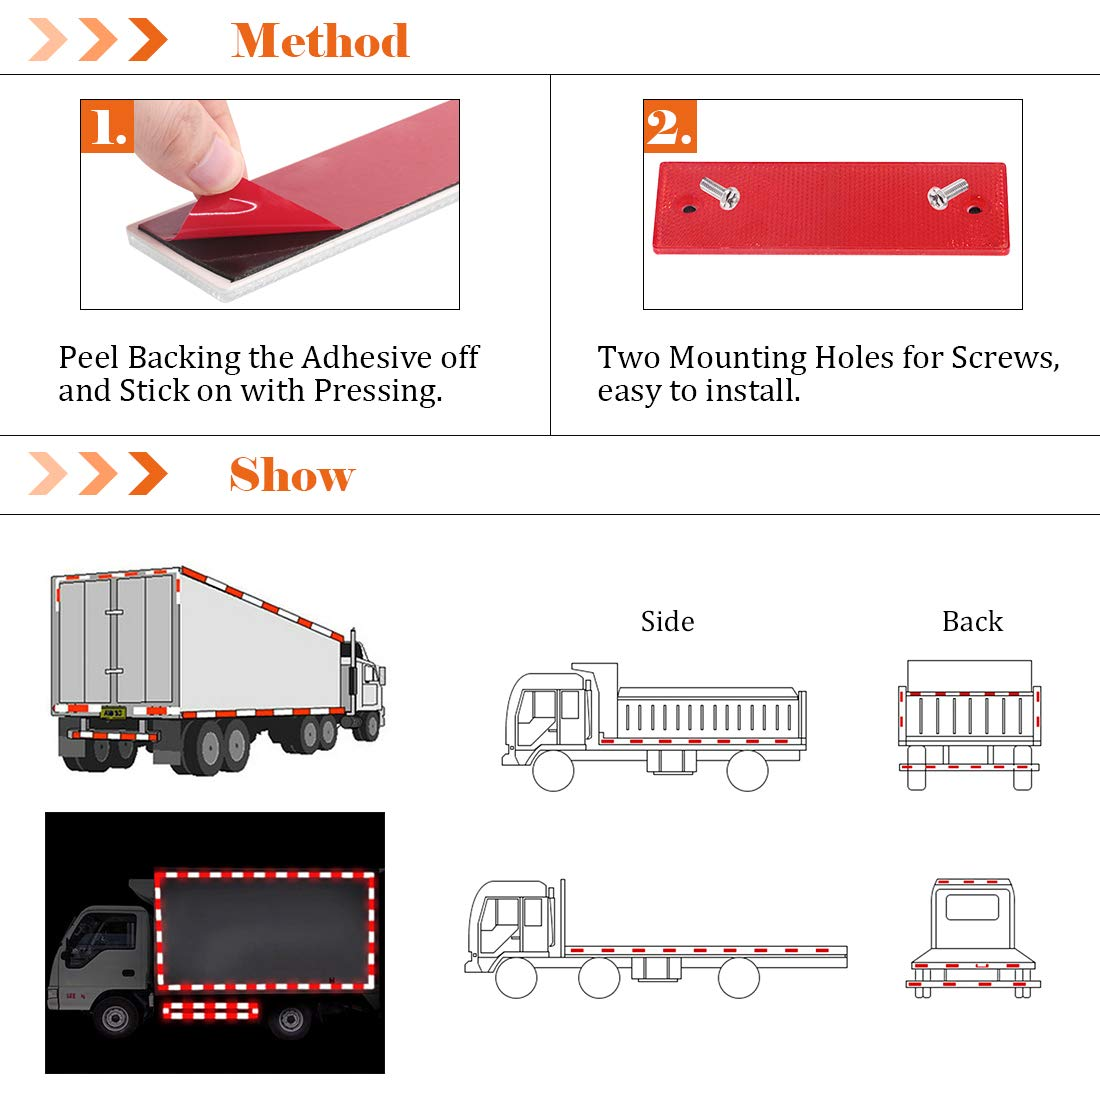 Rustark 20 Pcs Reflective Tape Waterproof Self-adhesive Reflector Conspicuity Safety Caution Warning Sticker for Truck Trailer Pickup Mailbox Red and White